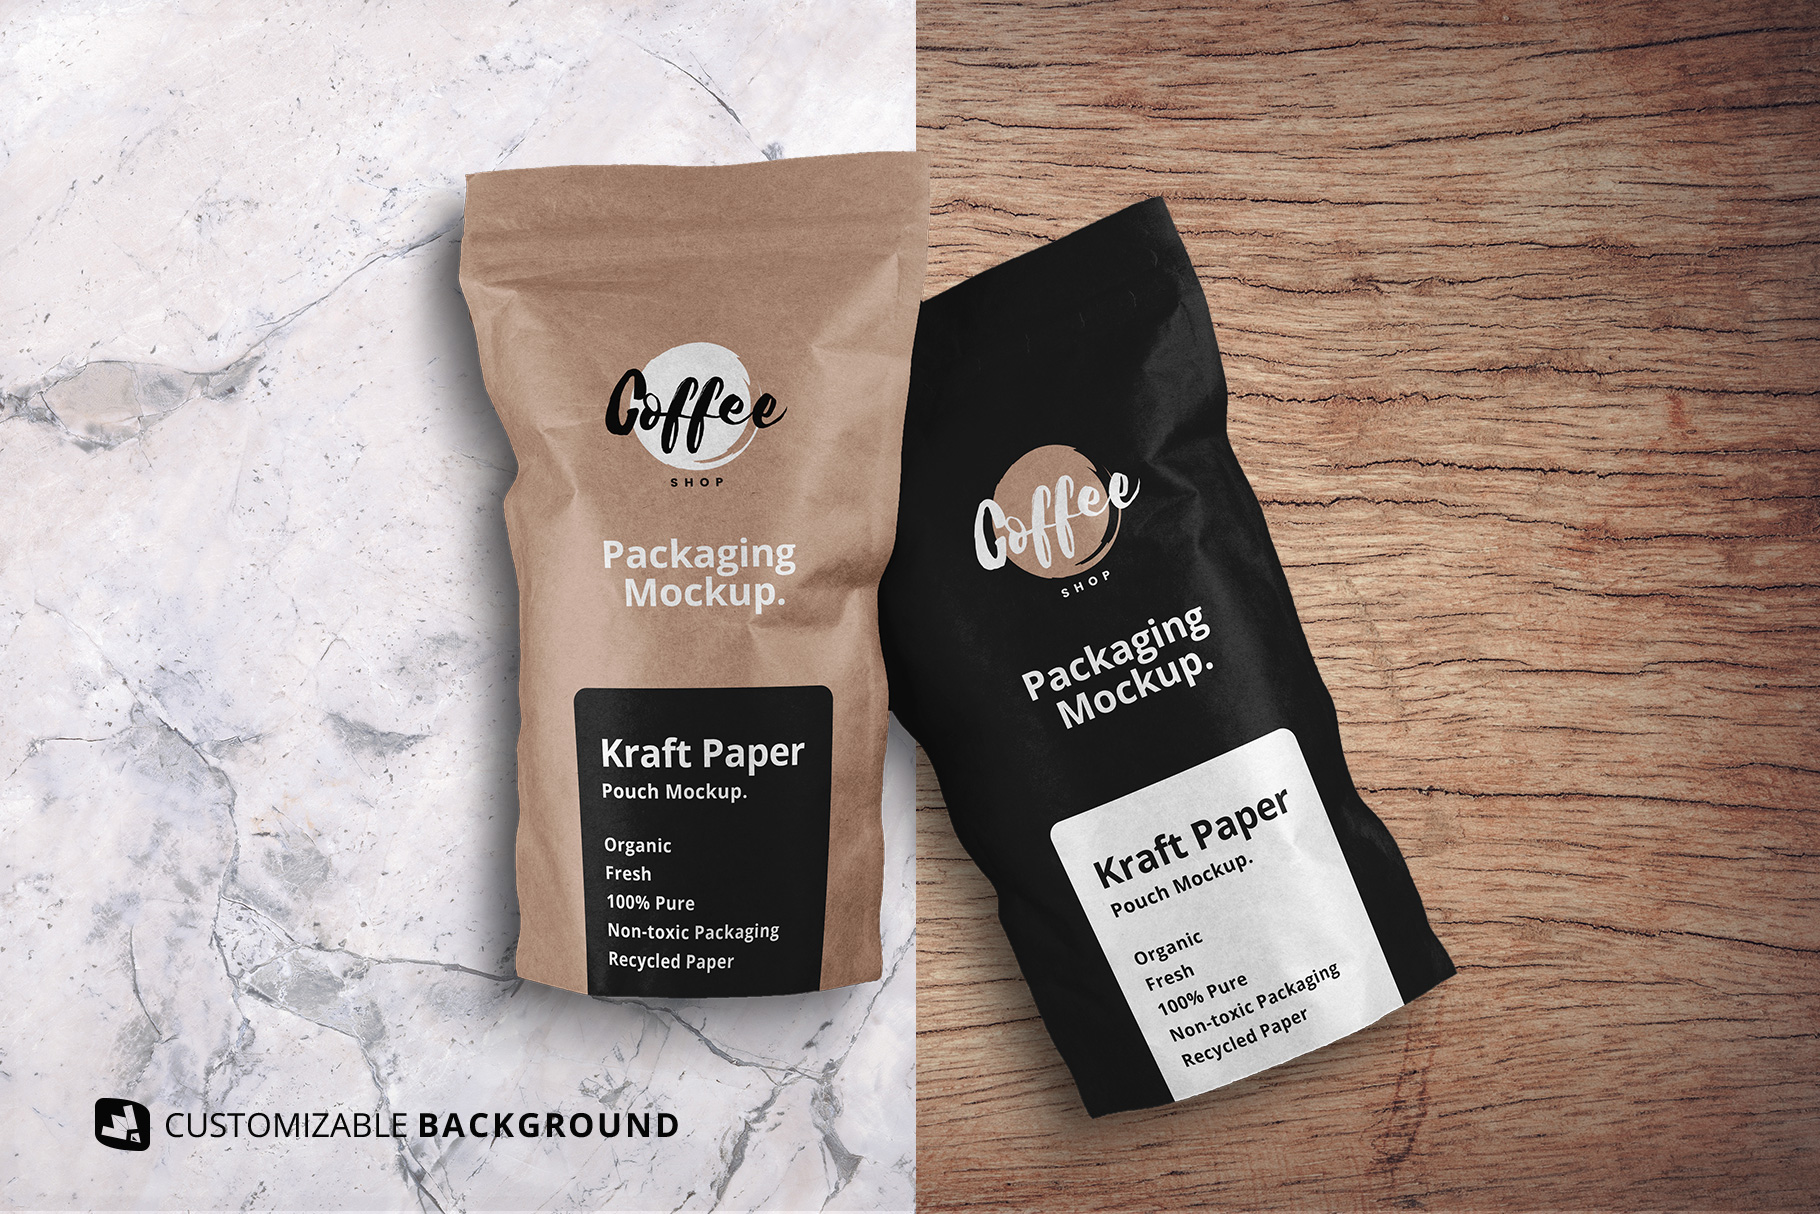 change background options of the tall kraft paper packaging mockup